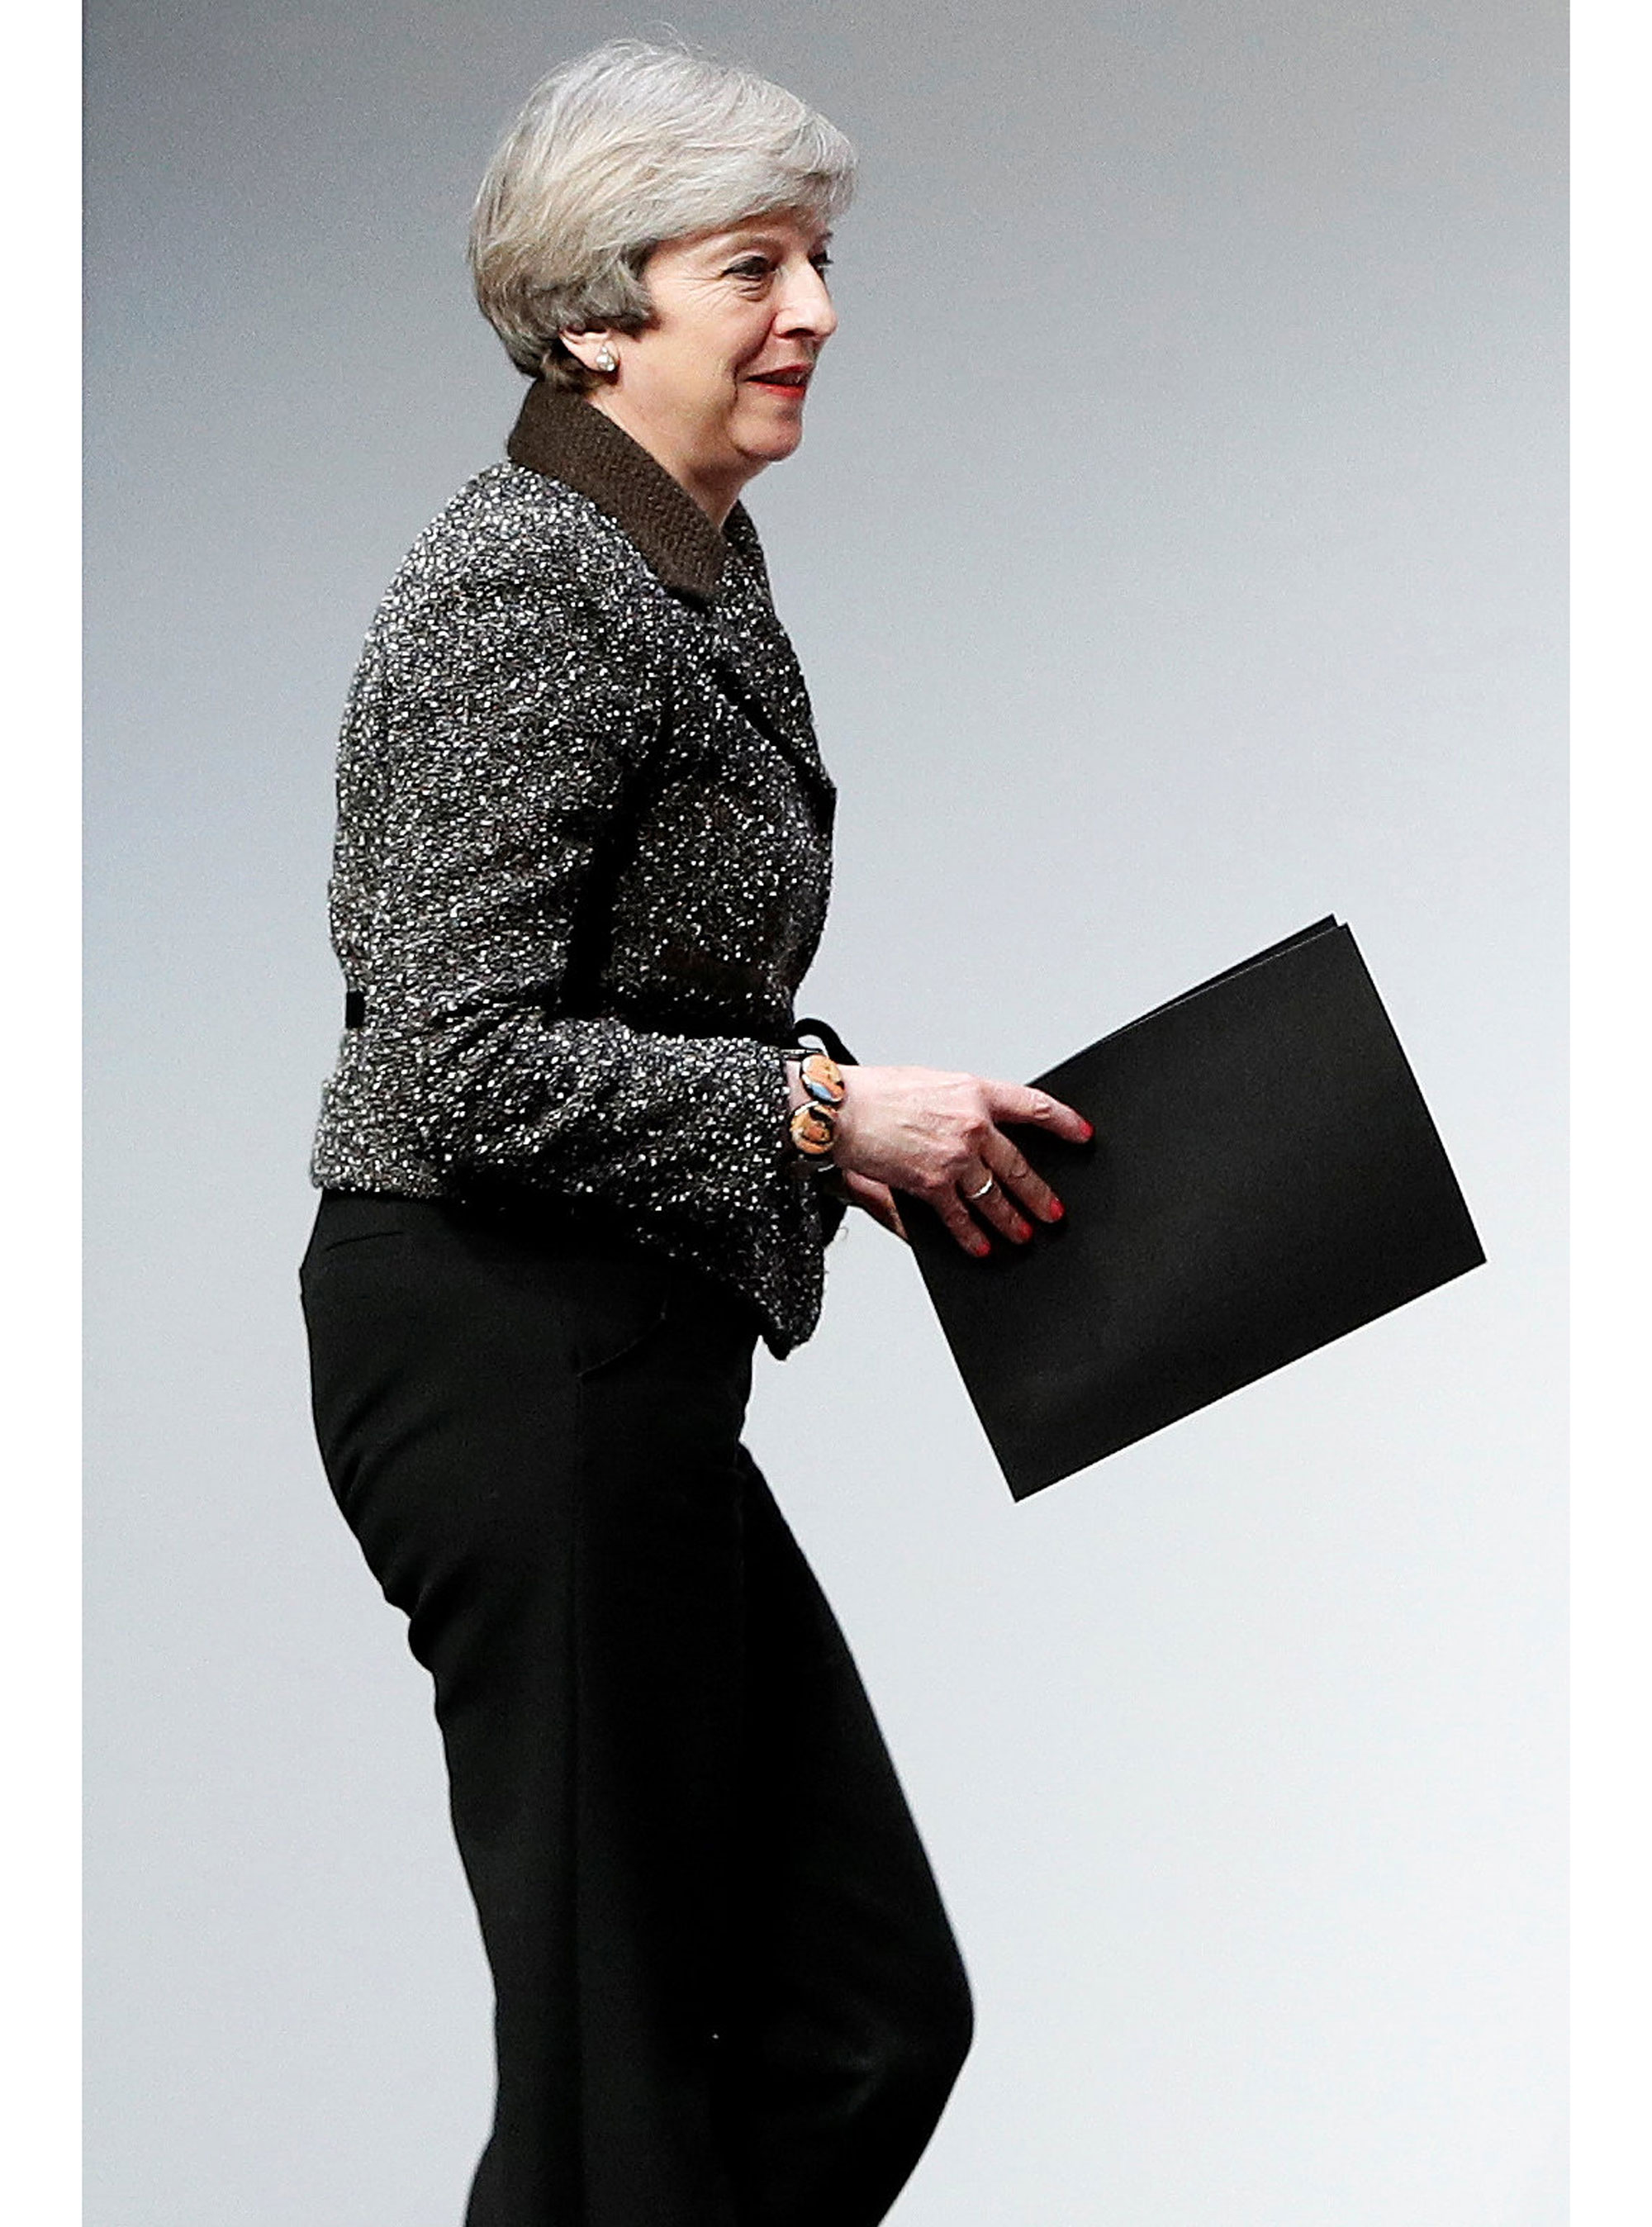 Theresa May And Other Politicians Respond To Legs-It' Controversy